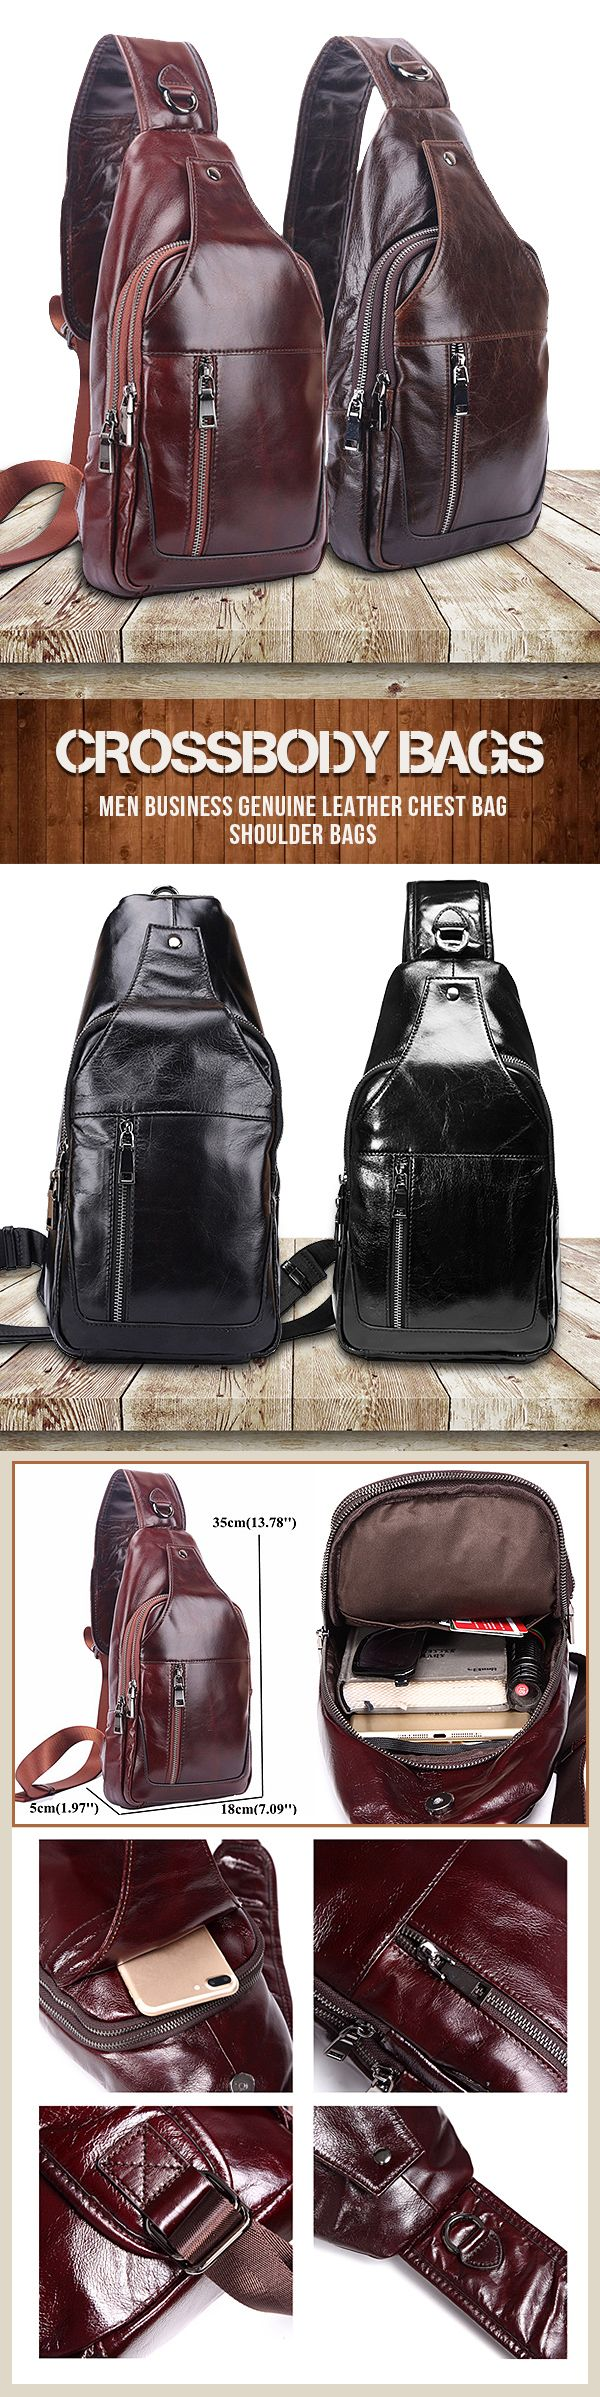 US$59.99+Free shipping.Men Business Bags, Men Genuine Bag, Leather Chest Bag, Shoulder Bags, Crossbody Bags.Color: Black, Brown, Coffee, Dark Brown.Exquisite Workmanship, Large Capacity Inside, Great For Casual&Outdoor Using.